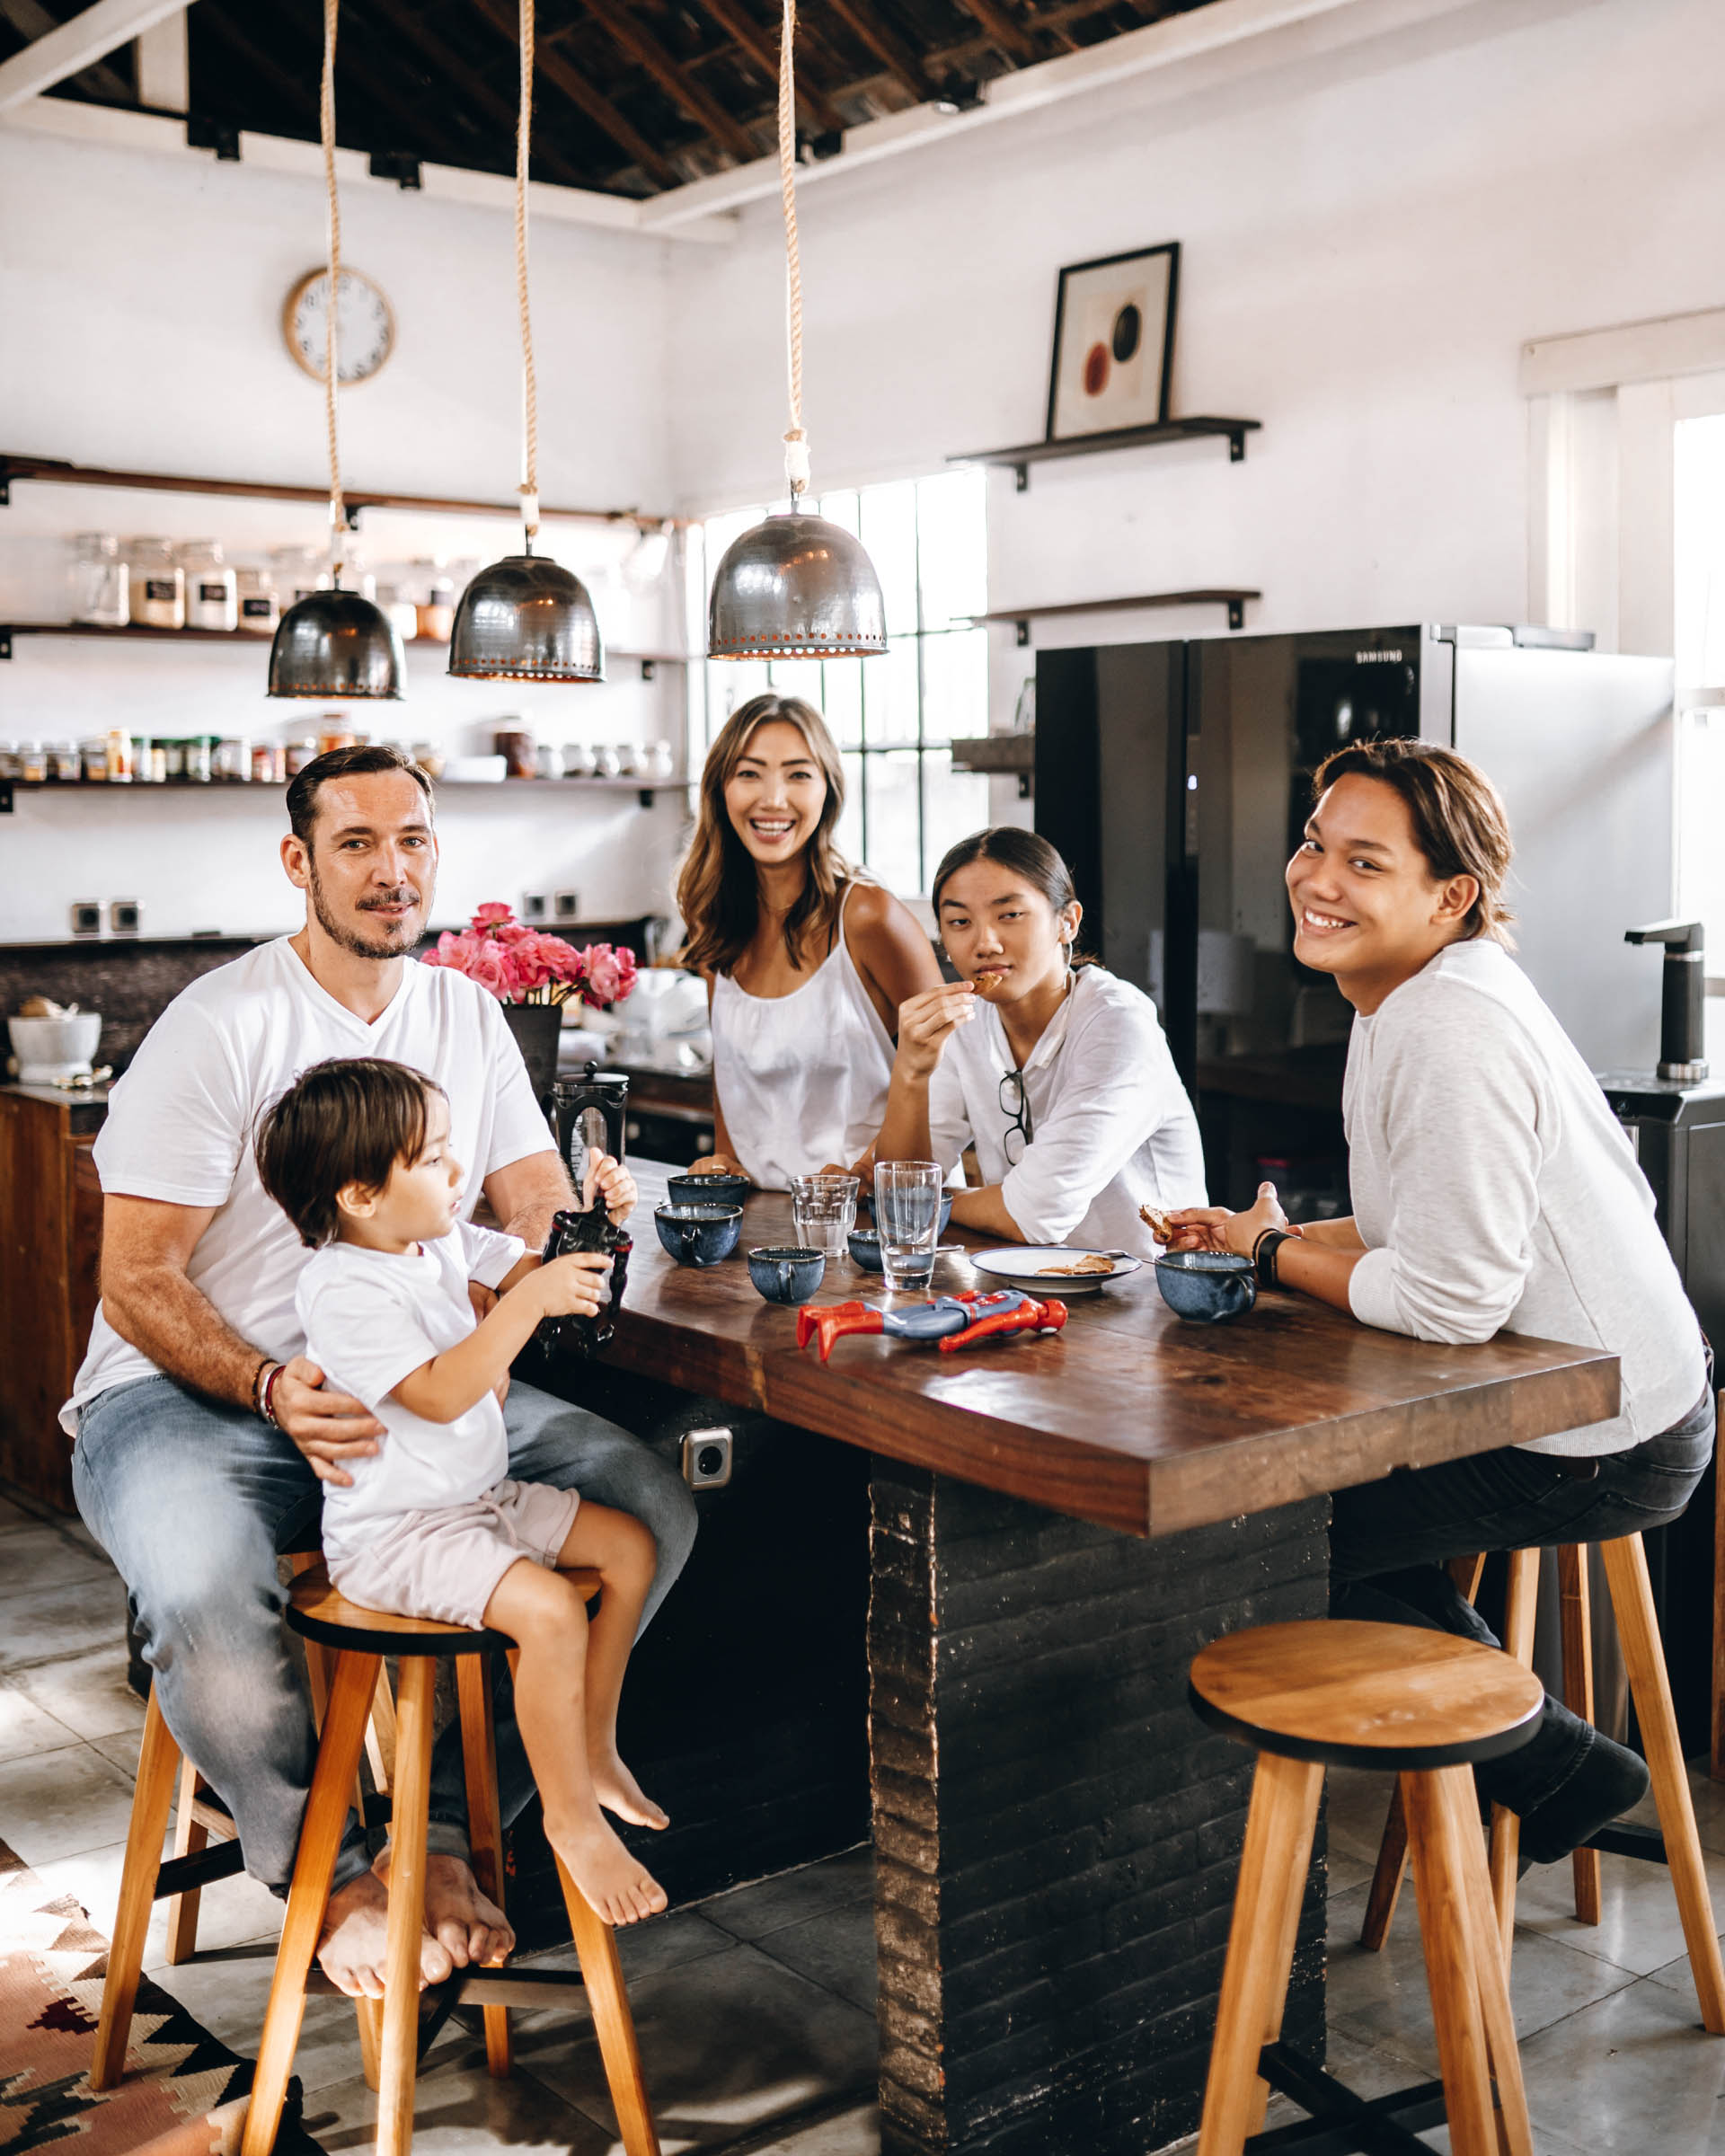 keira-mason-fourcard-family-shoot-kitchen-together.jpg